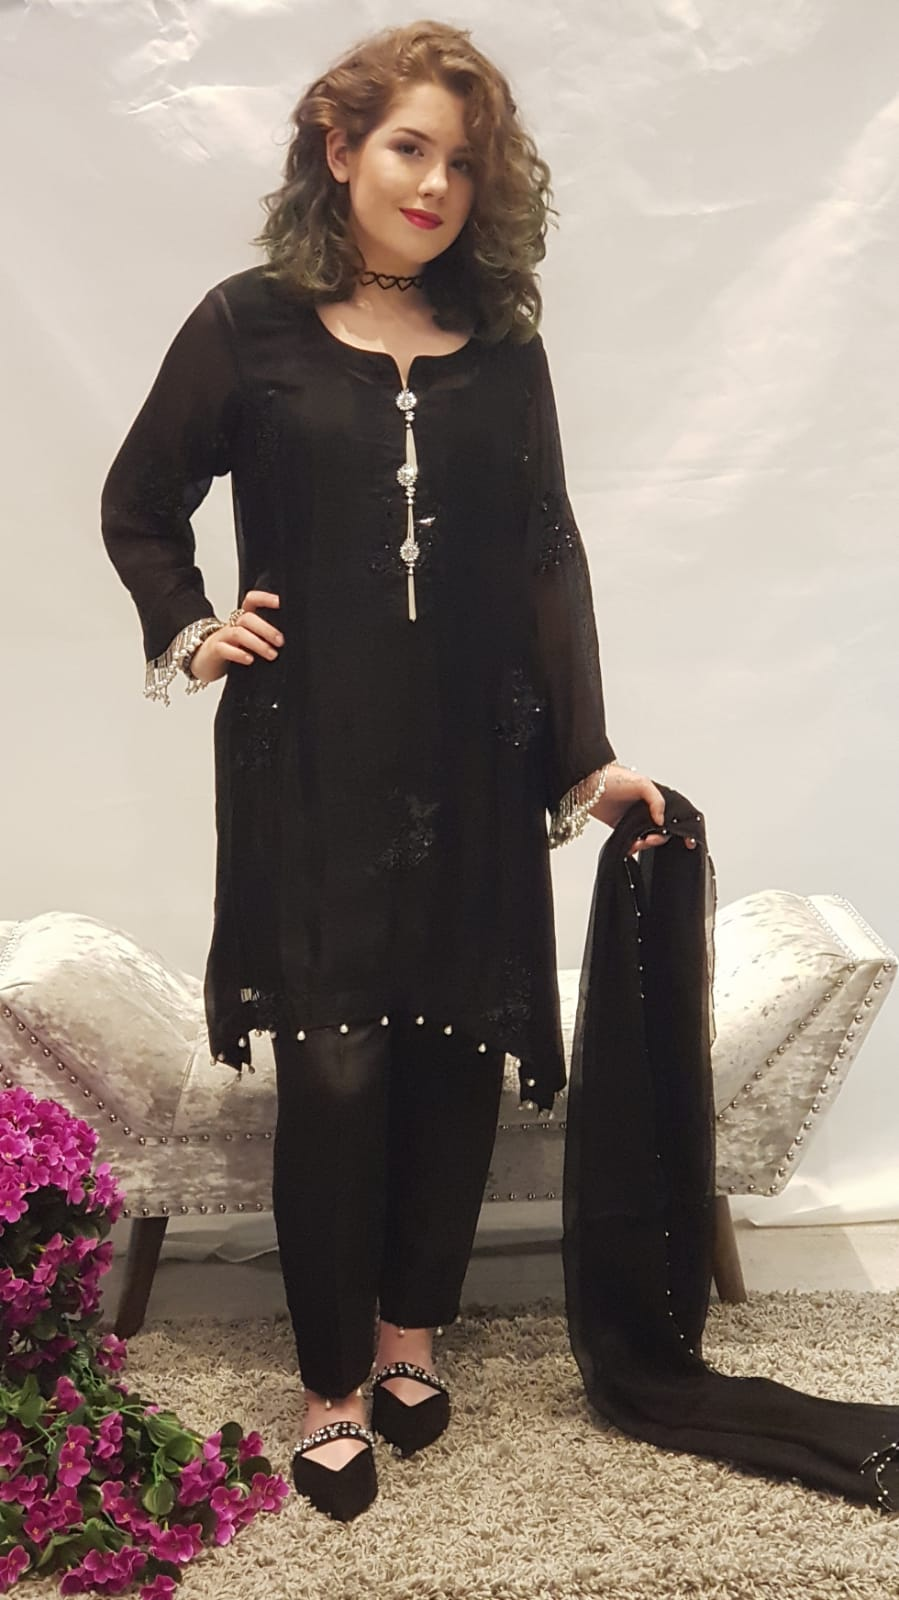 Black A Line Dress Sarah Zaaraz London Fashion Designer Pakistani Dress Designer Bridal Dresses